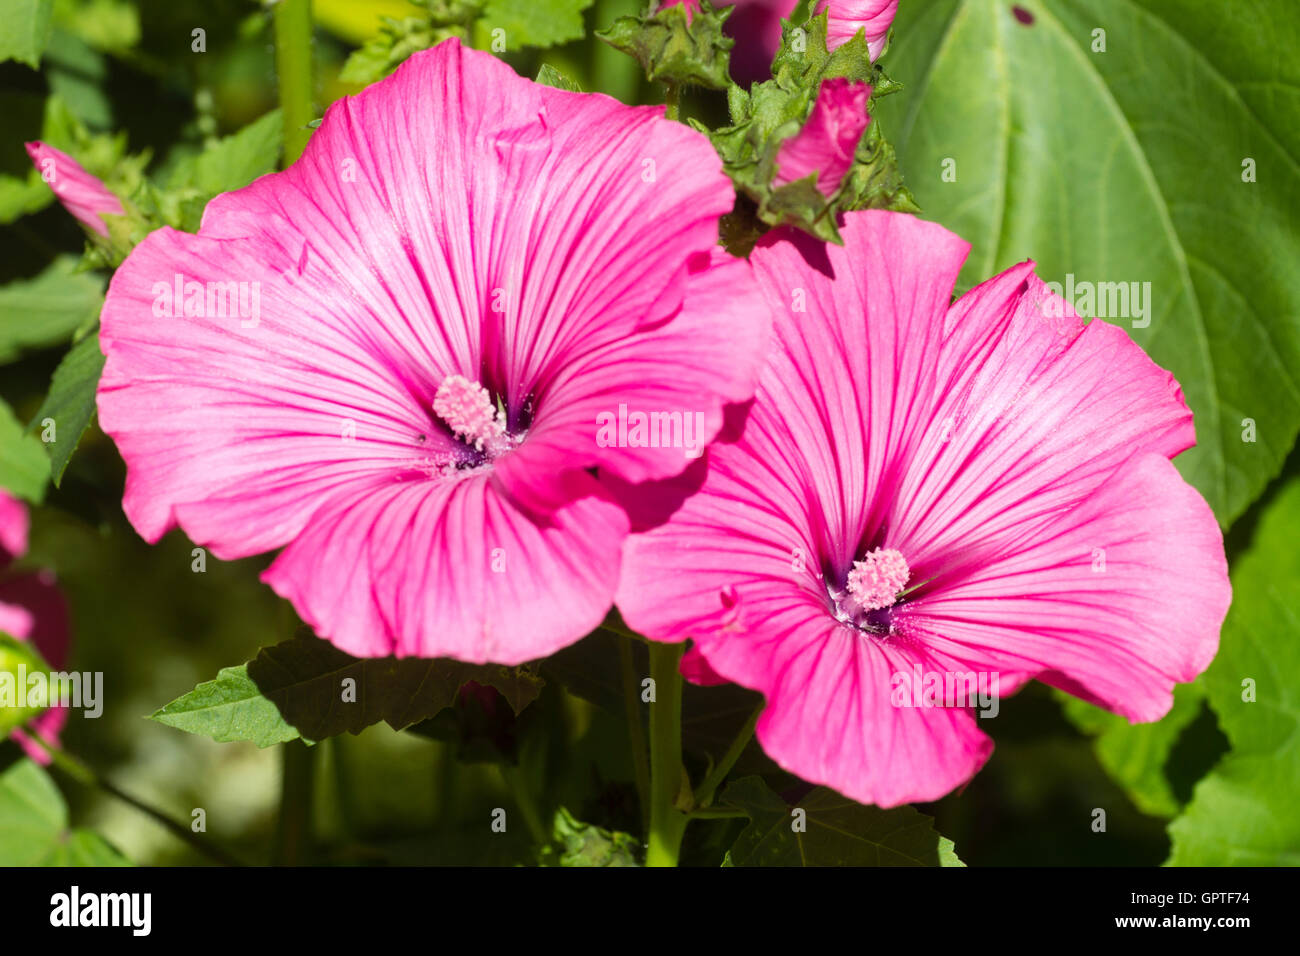 Lavatera flowers stock photos lavatera flowers stock images alamy large pink flowers of the bushy long flowering annual mallow lavatera trimestris silver izmirmasajfo